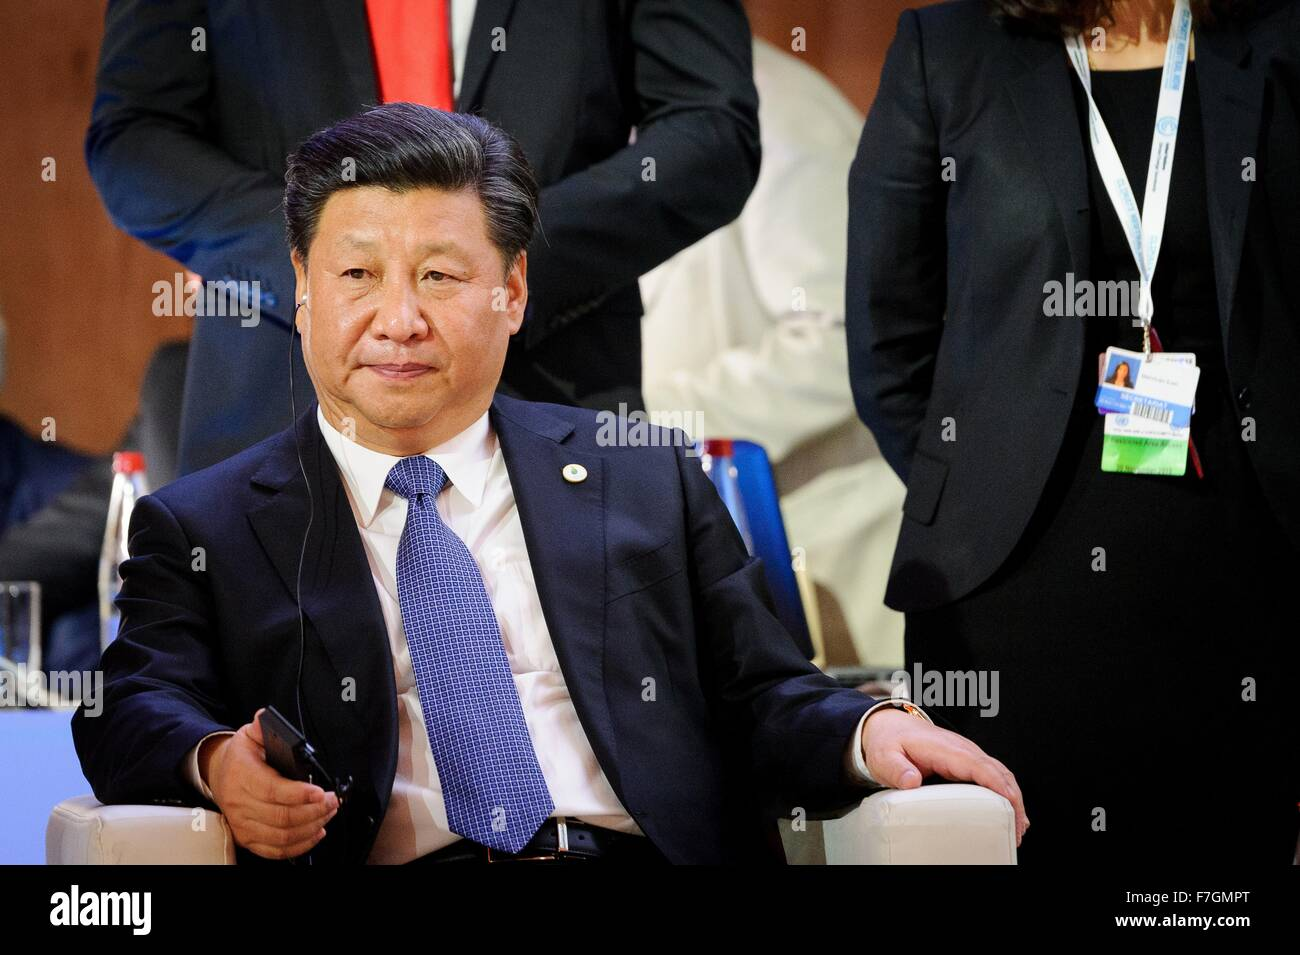 Le Bourget, France. 30th November, 2015. Chinese President Xi Jinping listens to U.S. President Barack Obama using - Stock Image